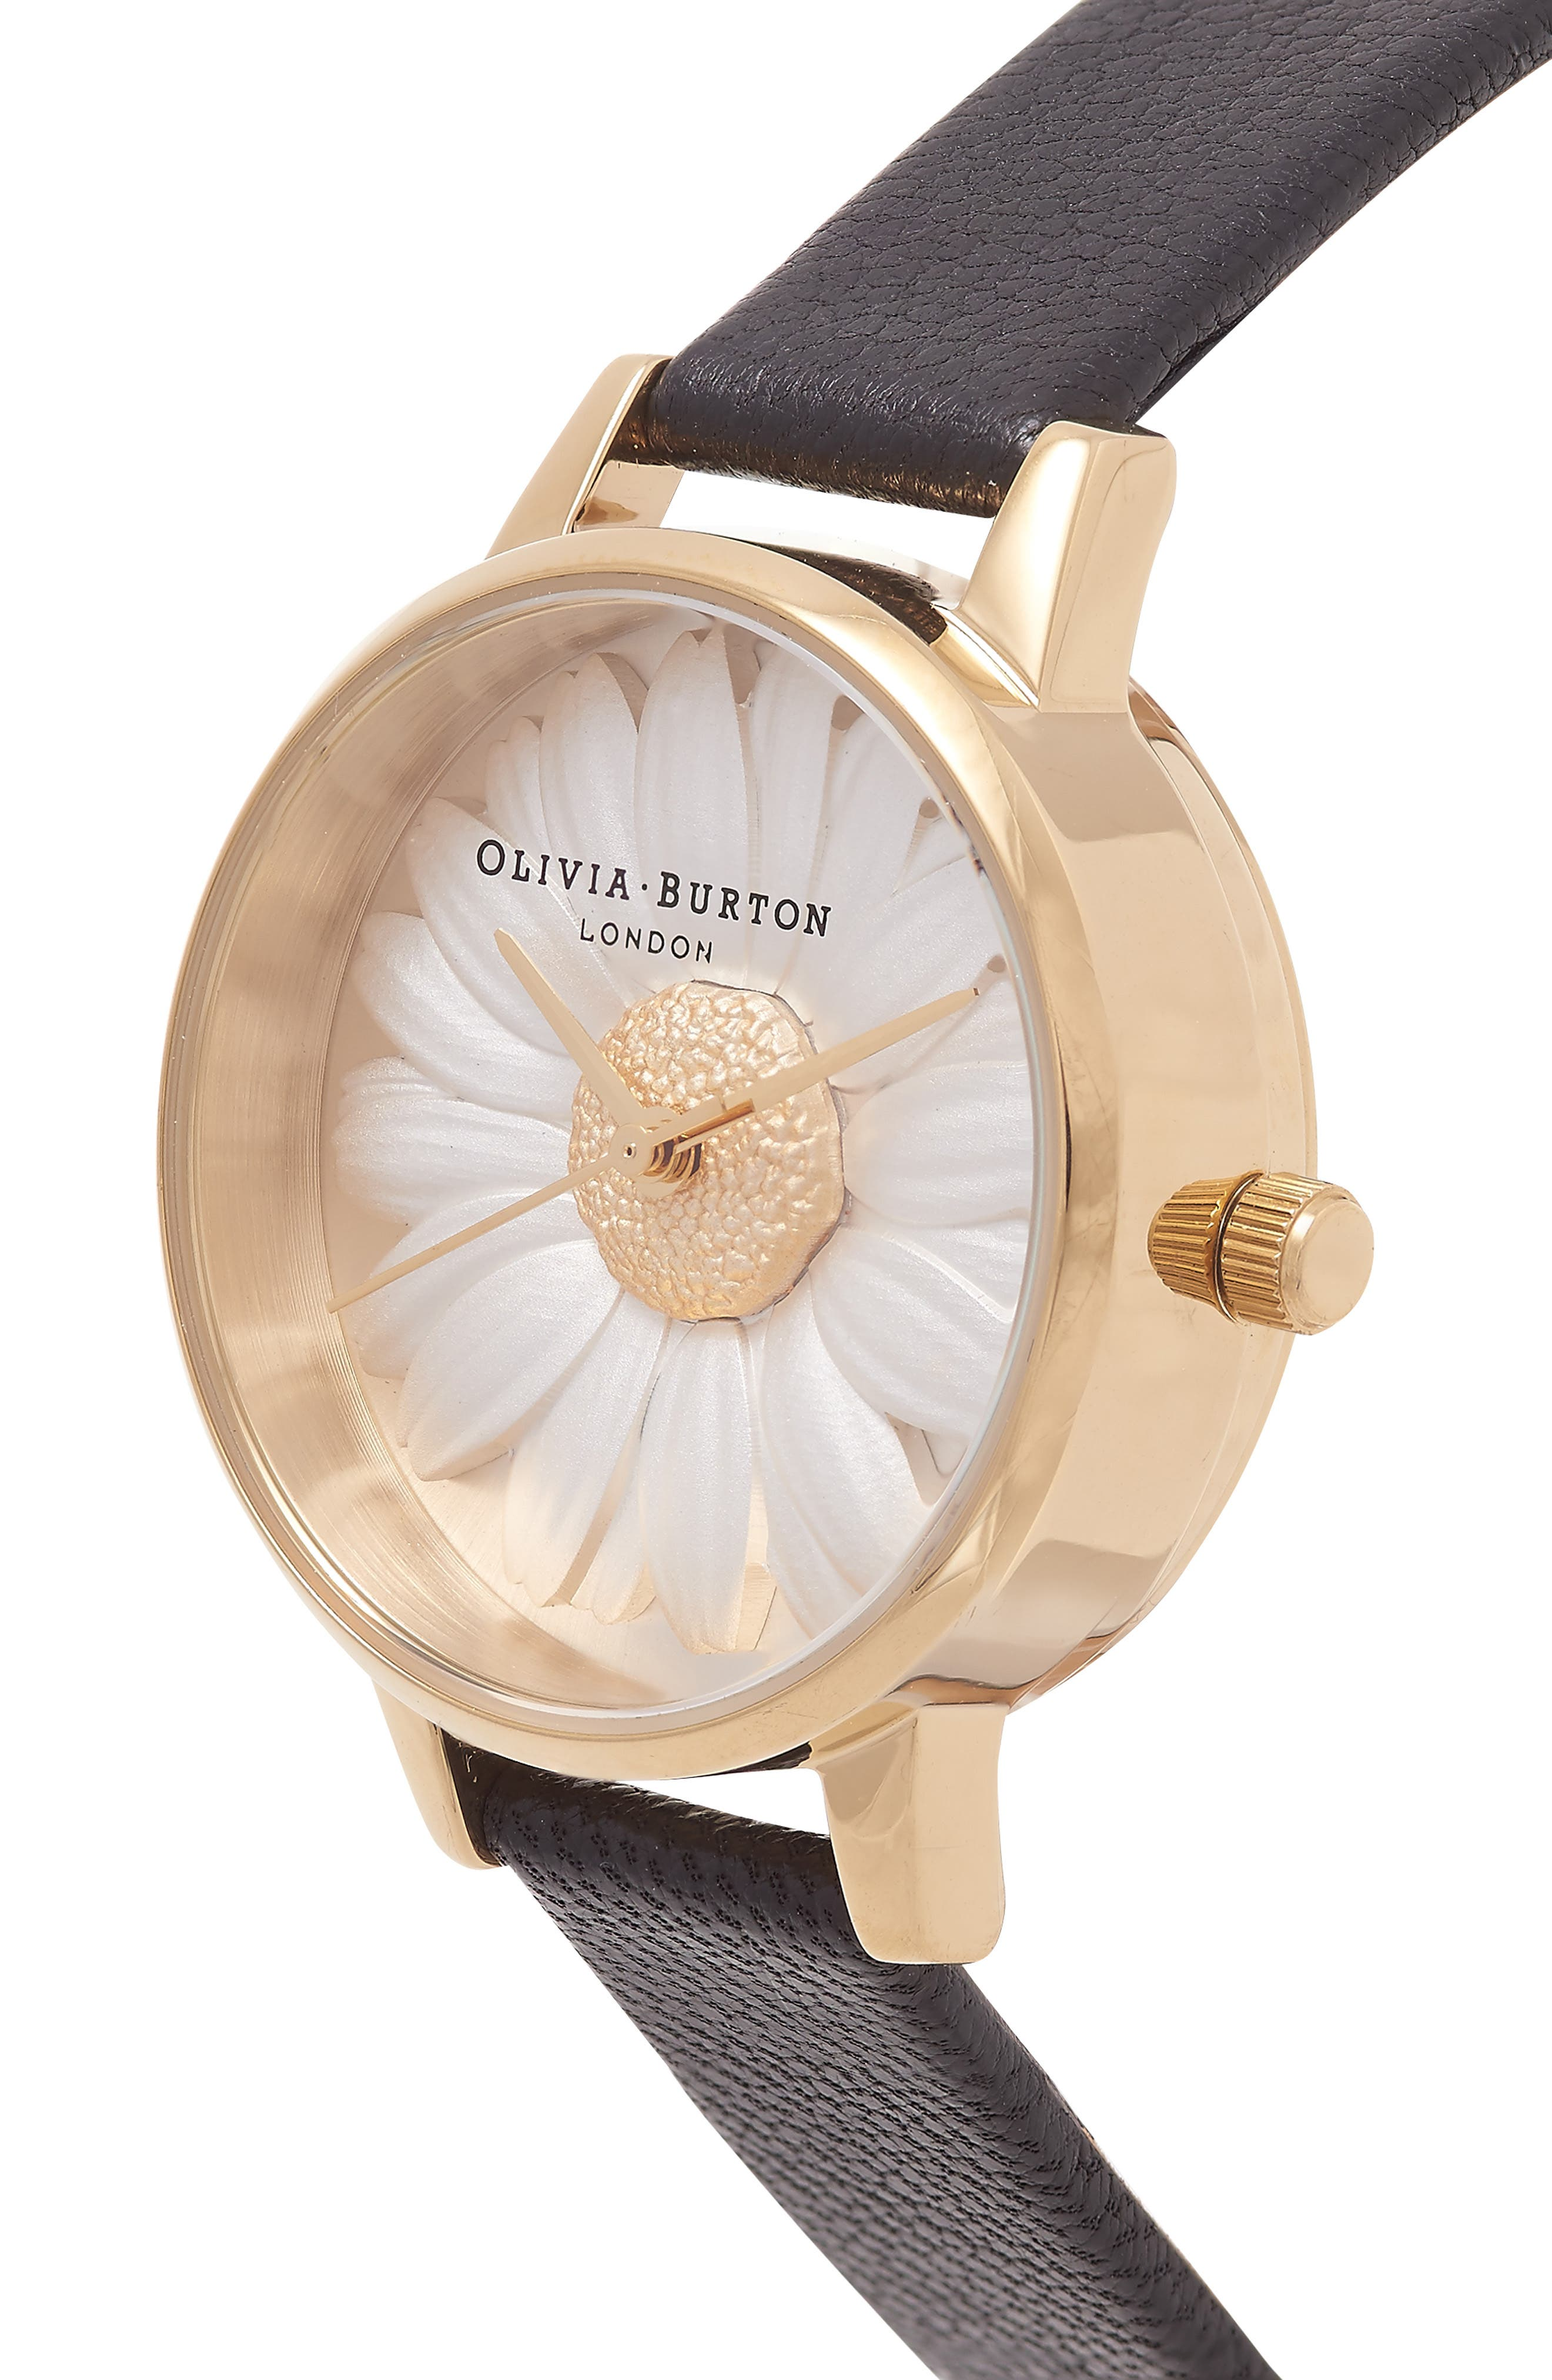 3D Daisy Leather Strap Watch, 30mm,                             Alternate thumbnail 5, color,                             BLACK/ GOLD